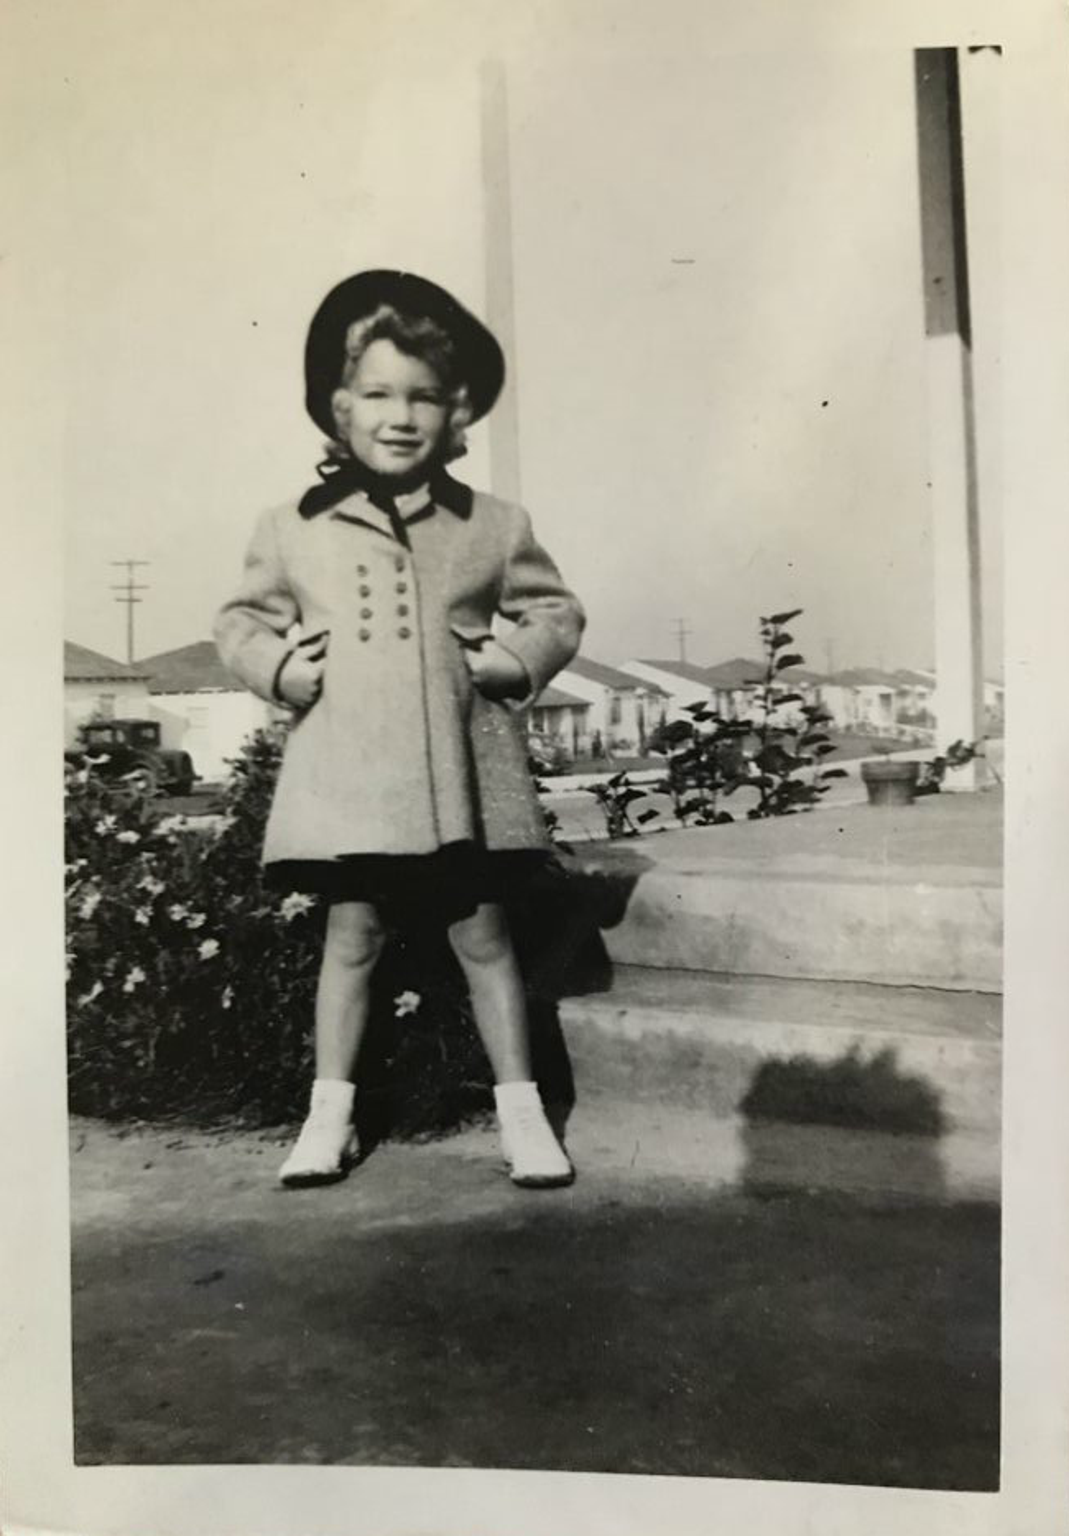 Sharon Elliott as a child in an undated family photo.